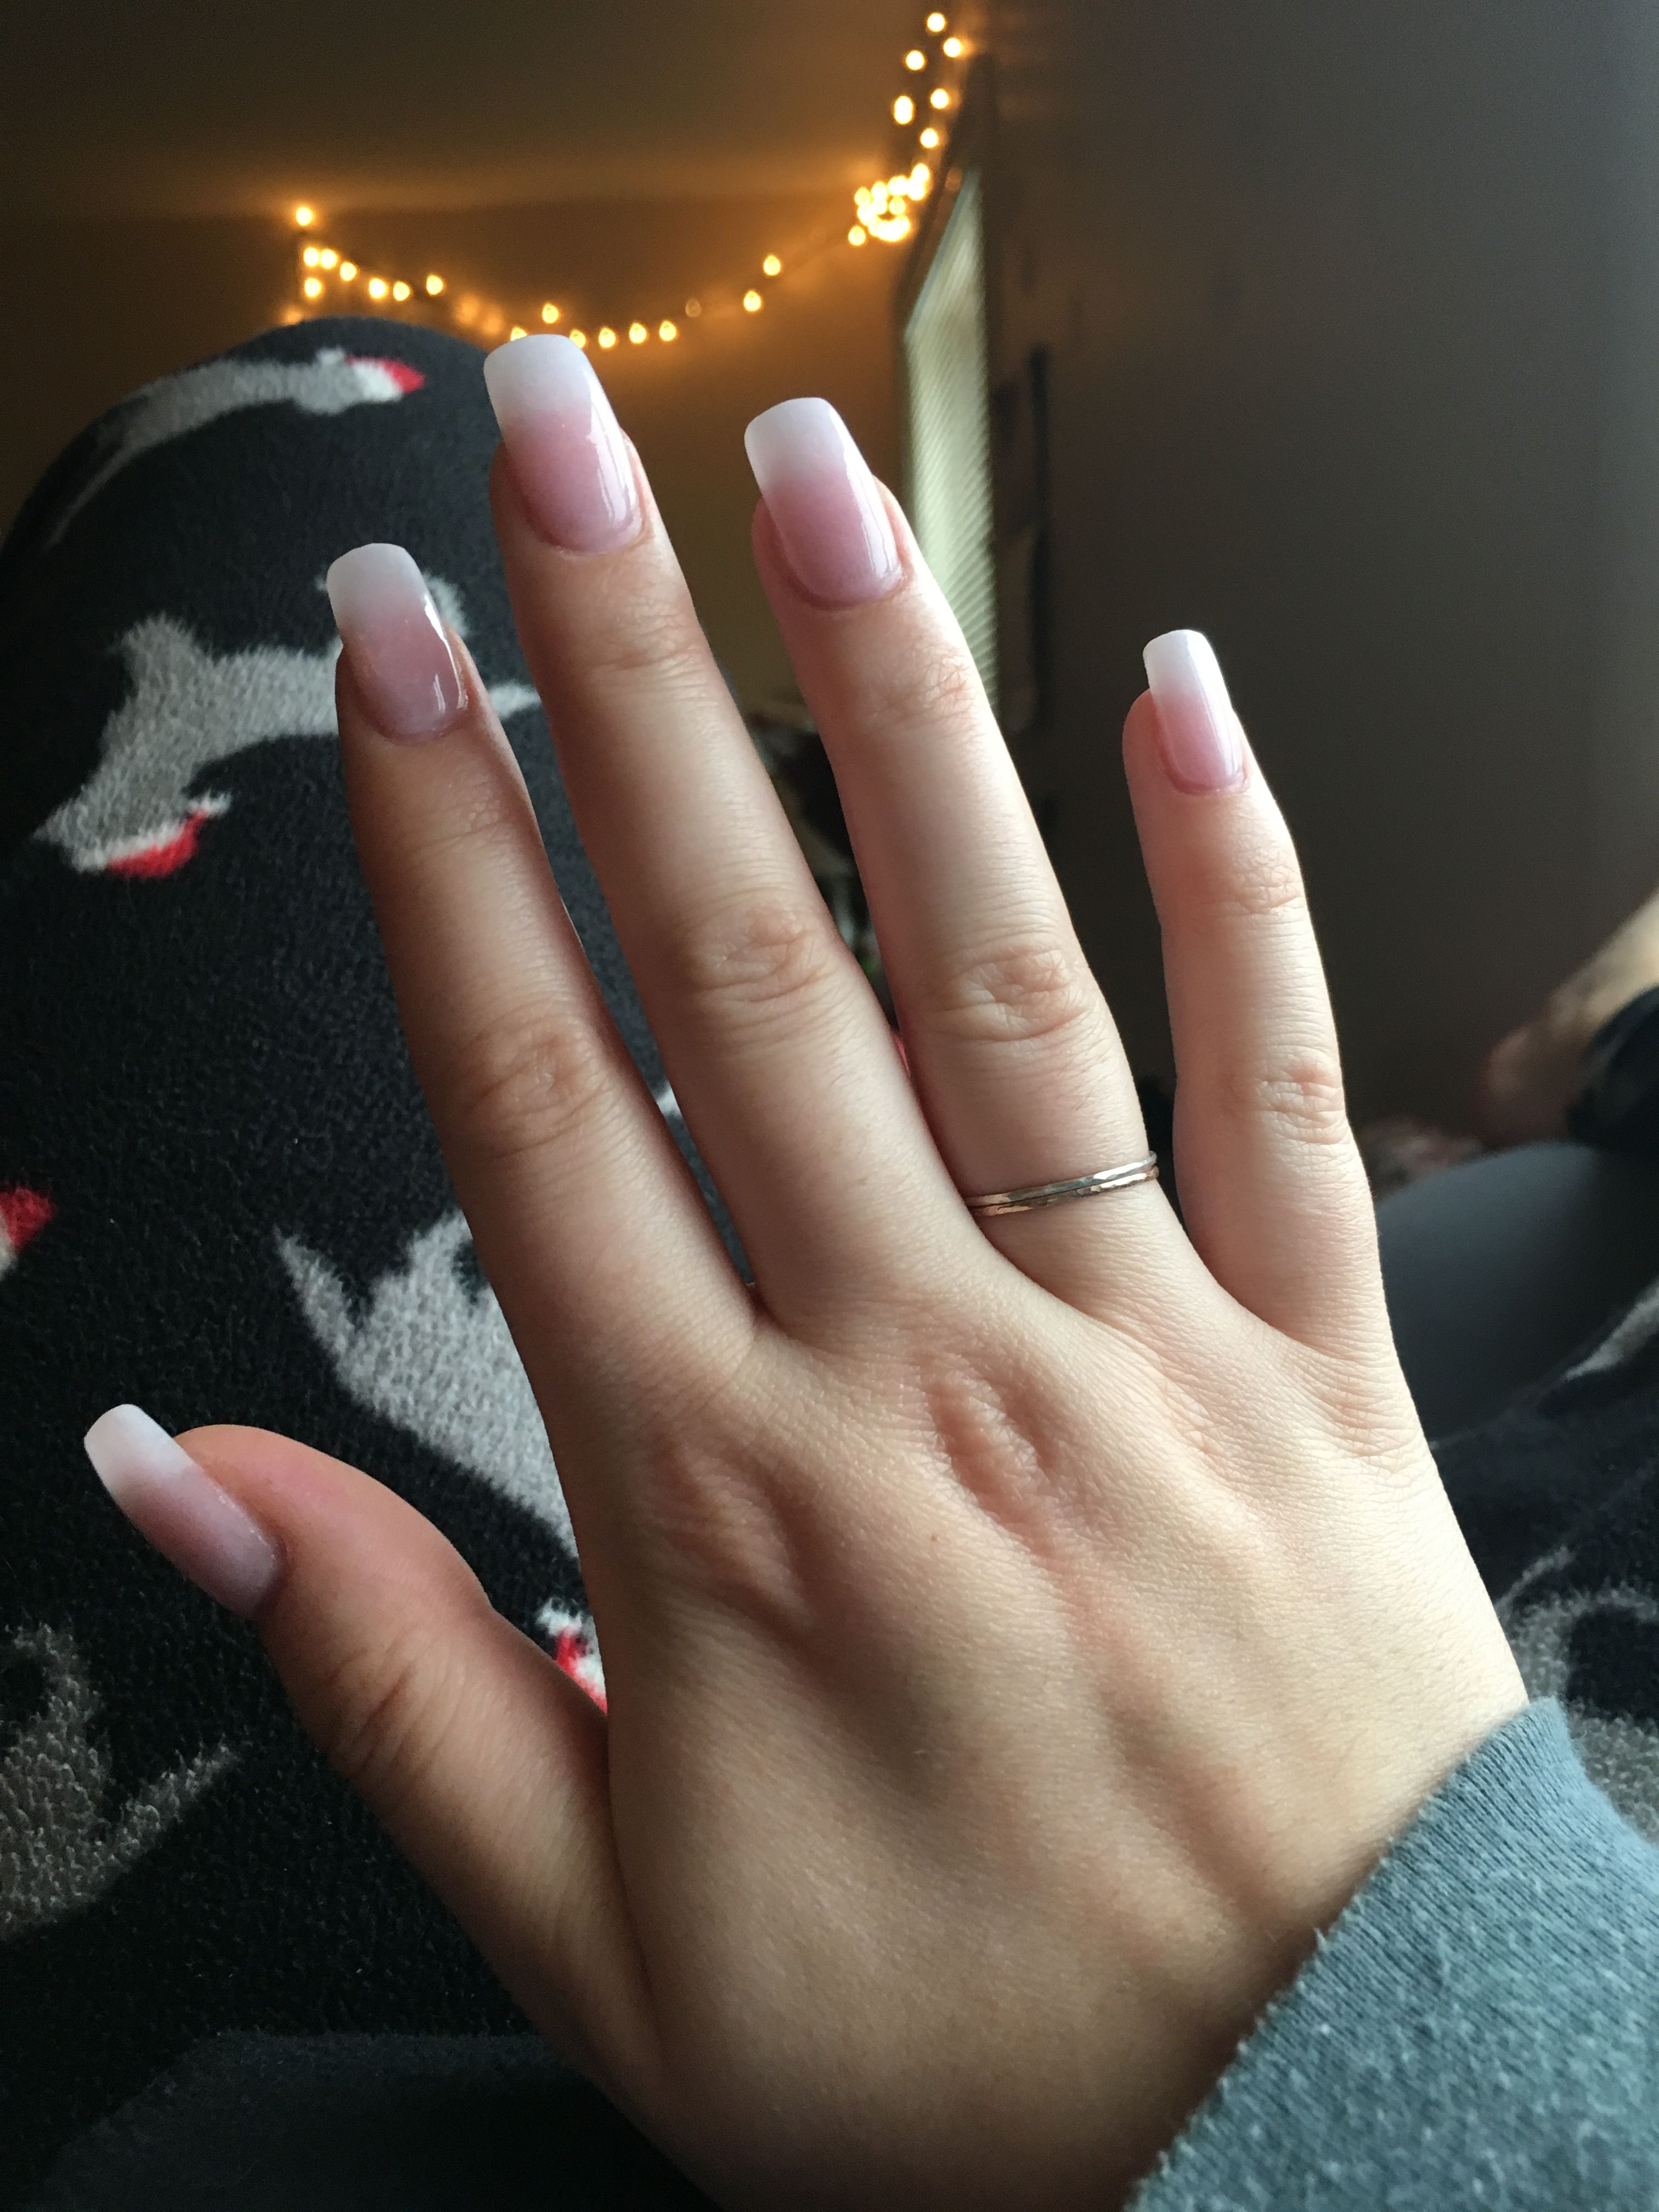 I went to get my nails done today and have fallen in love with this ...